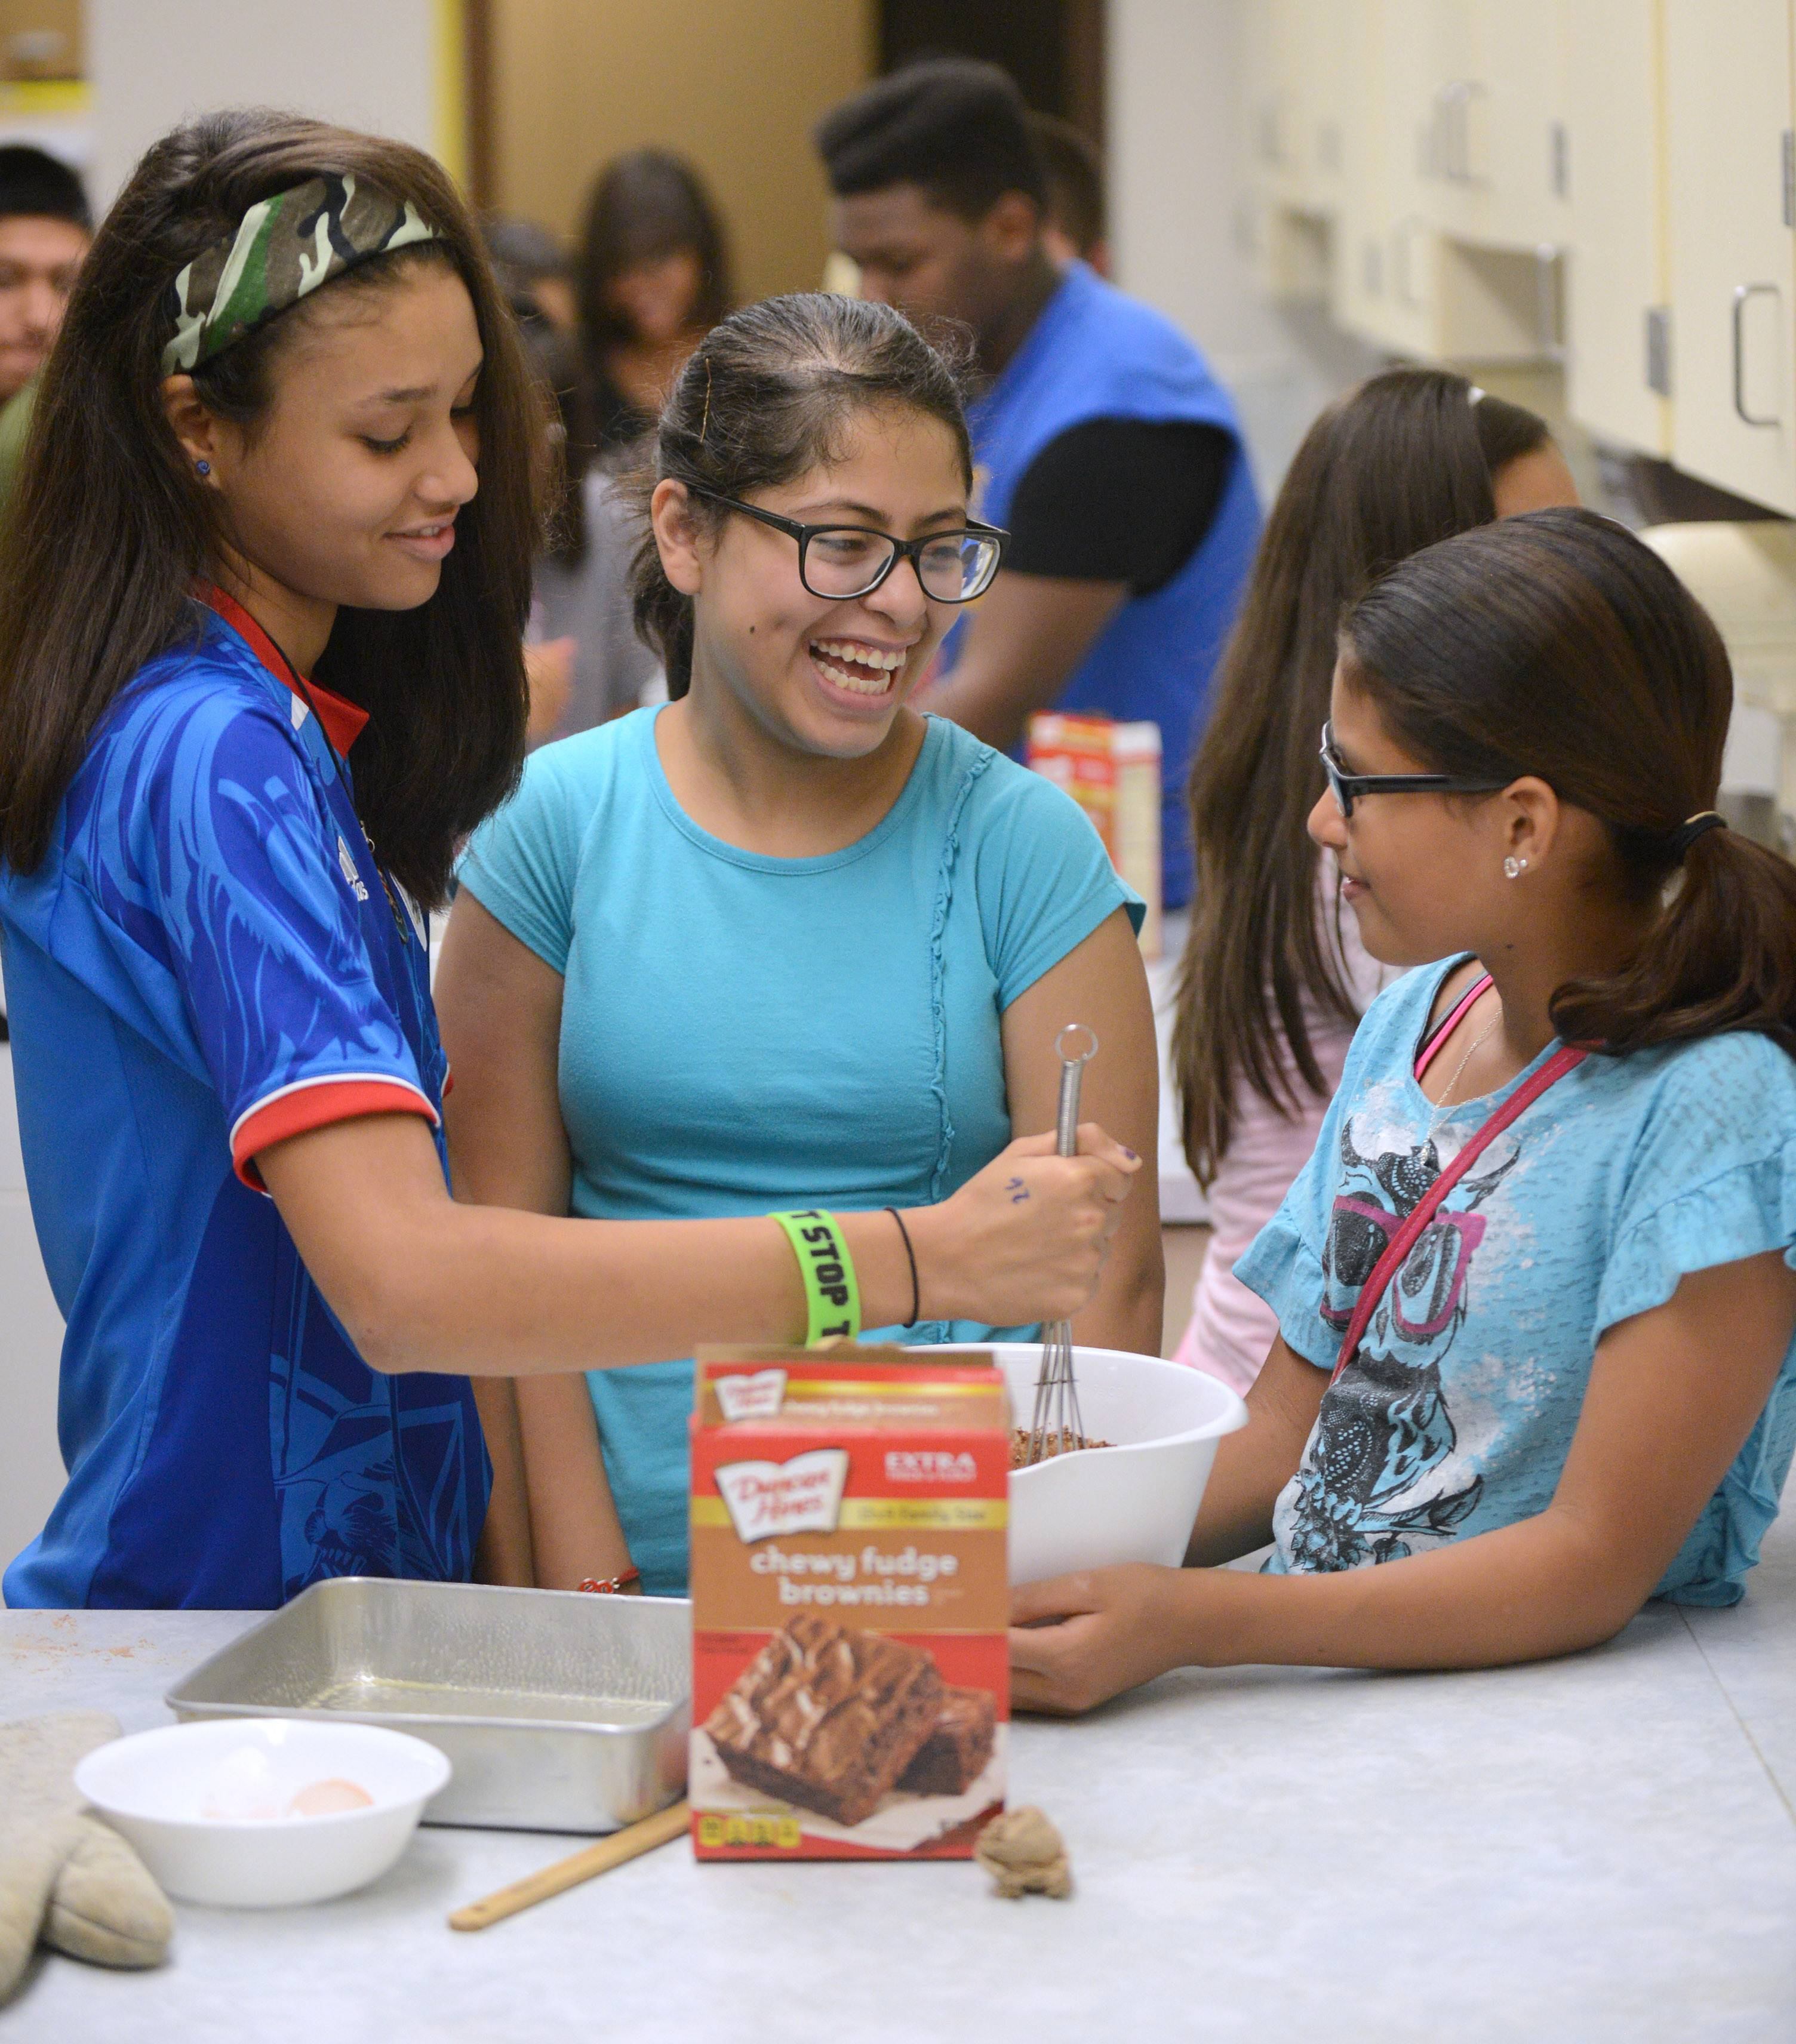 Yamaira Nieves, left, stirs a brownie mix while Alisha Ramos, center, and Daniela Ramirez, all 13, wait for their turn during a cooking class Tuesday at the Elgin Police Department's Kids United program at Abbott Middle School in Elgin. After dinner, they would be able to enjoy the brownies served with ice cream. Alisha has been coming to the program since she was 9.